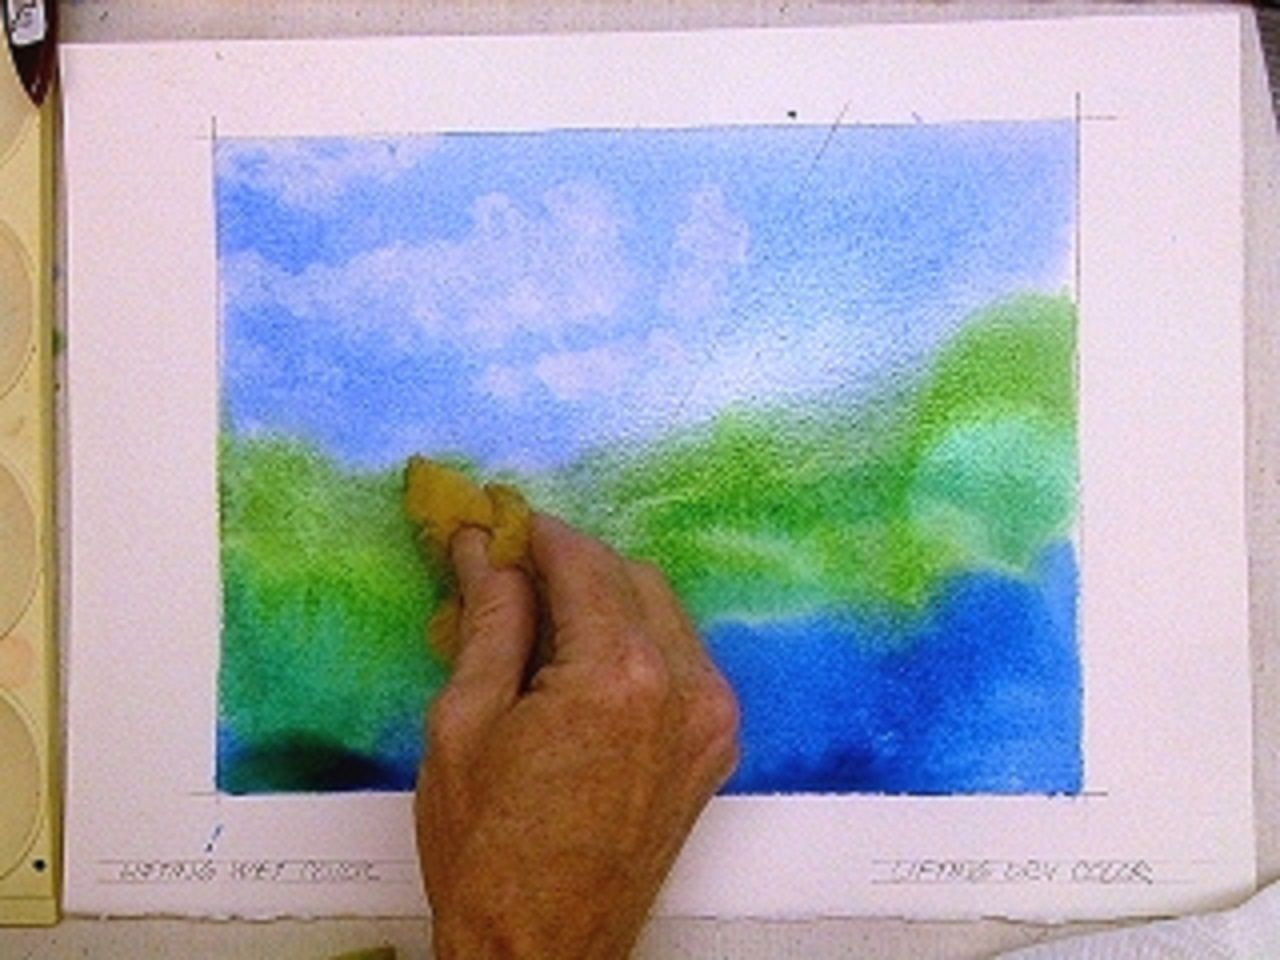 Watercolor Technique To Lift Erase Watercolor Painting Turner